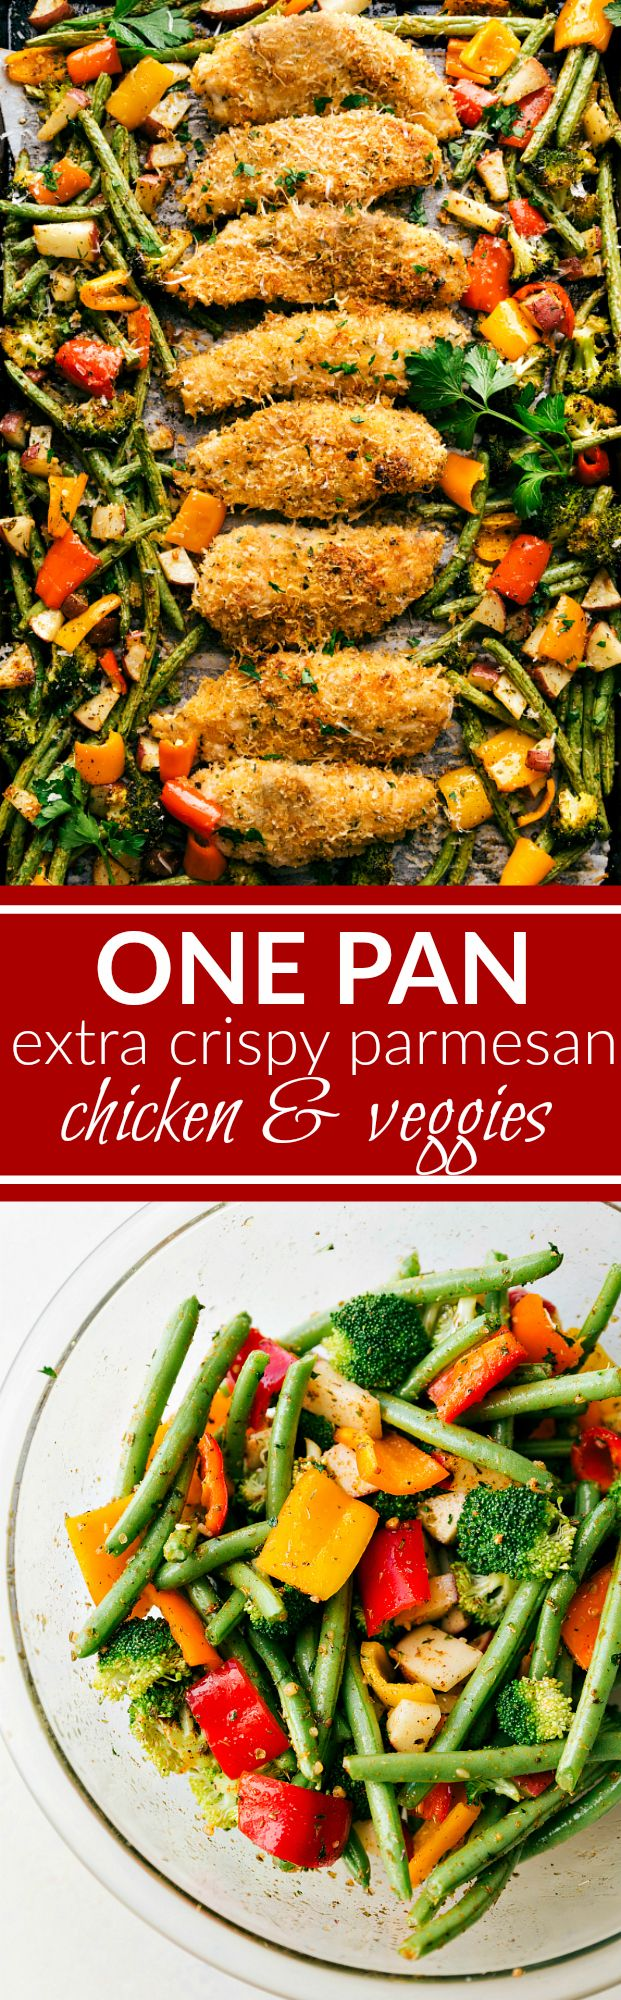 Baked EXTRA CRISPY parmesan chicken and veggies -- dinner made on one pan and packed with flavor! Sure to be a hit with the entire family! via chelseasmessyapron.com